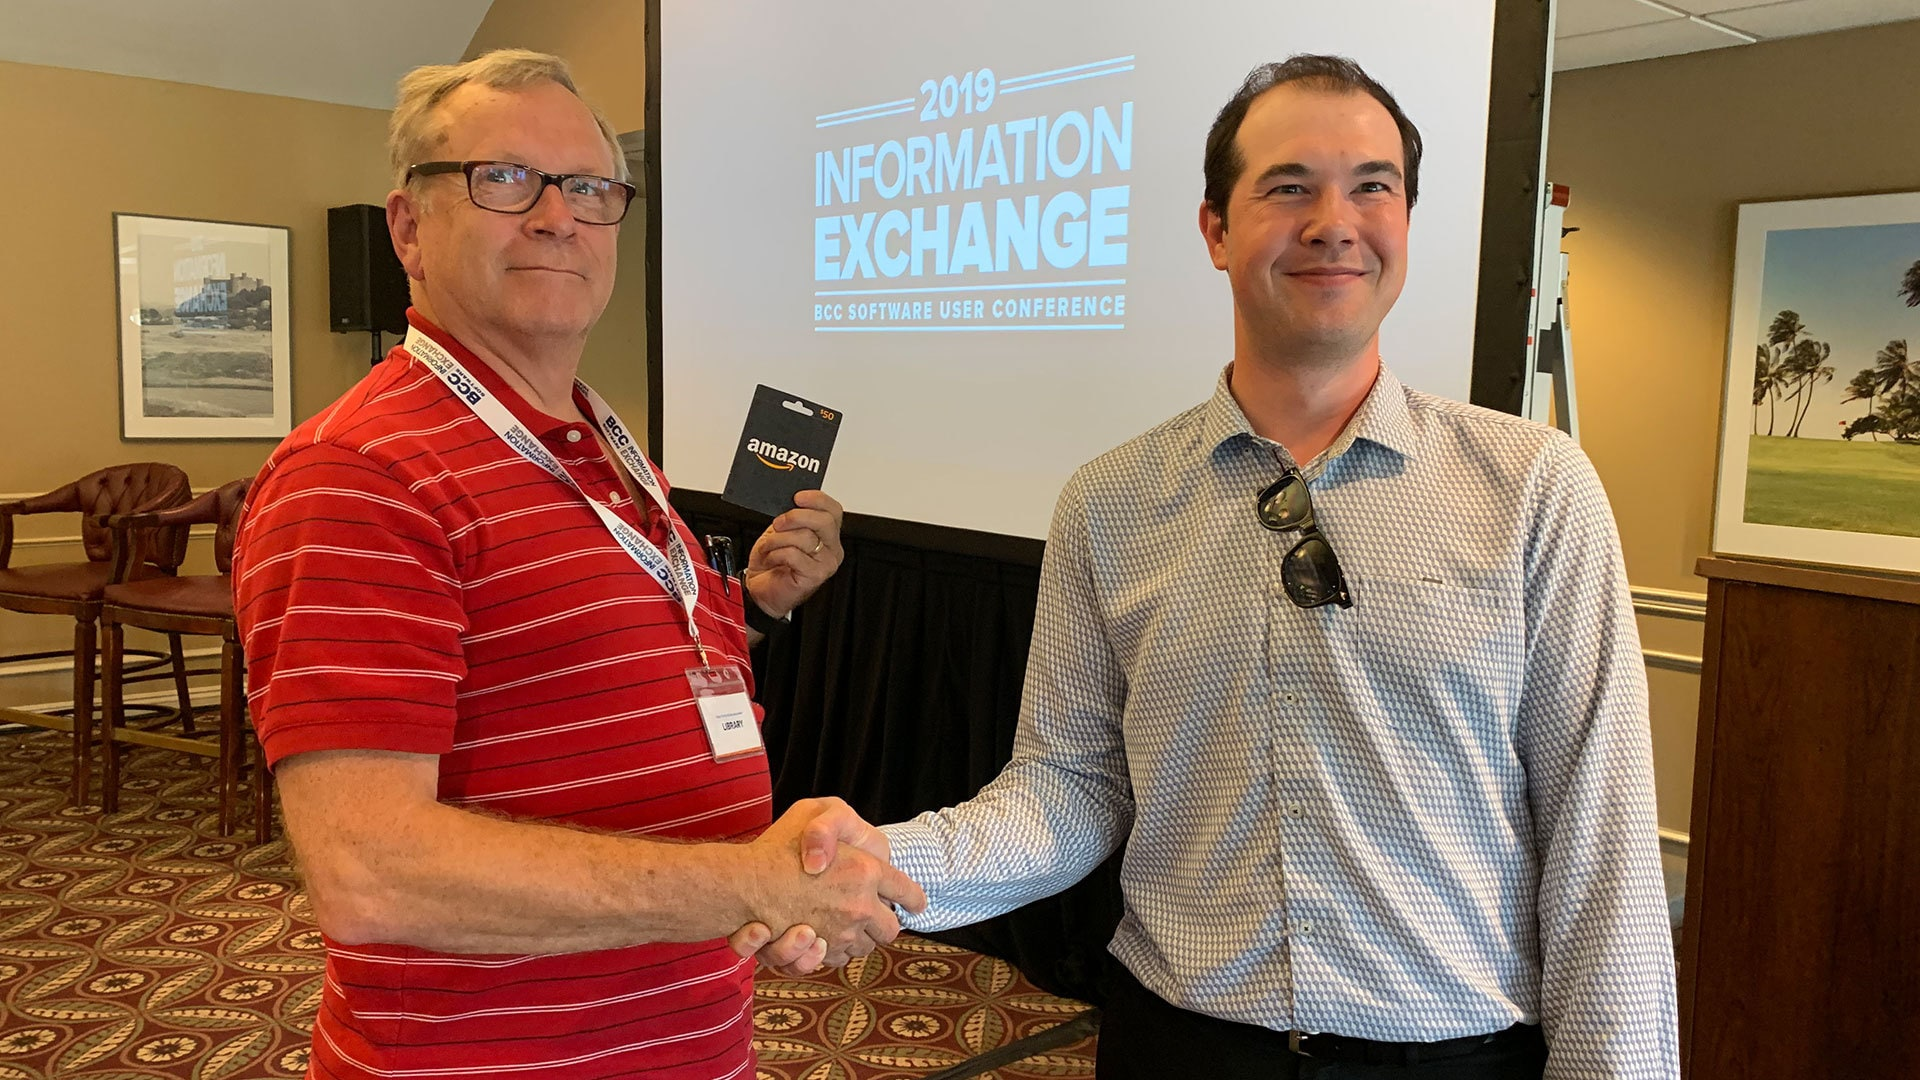 WINNER! Mike Libby from Perinton Publishing won a $50 Amazon gift card from show sponsor Solimar Systems.